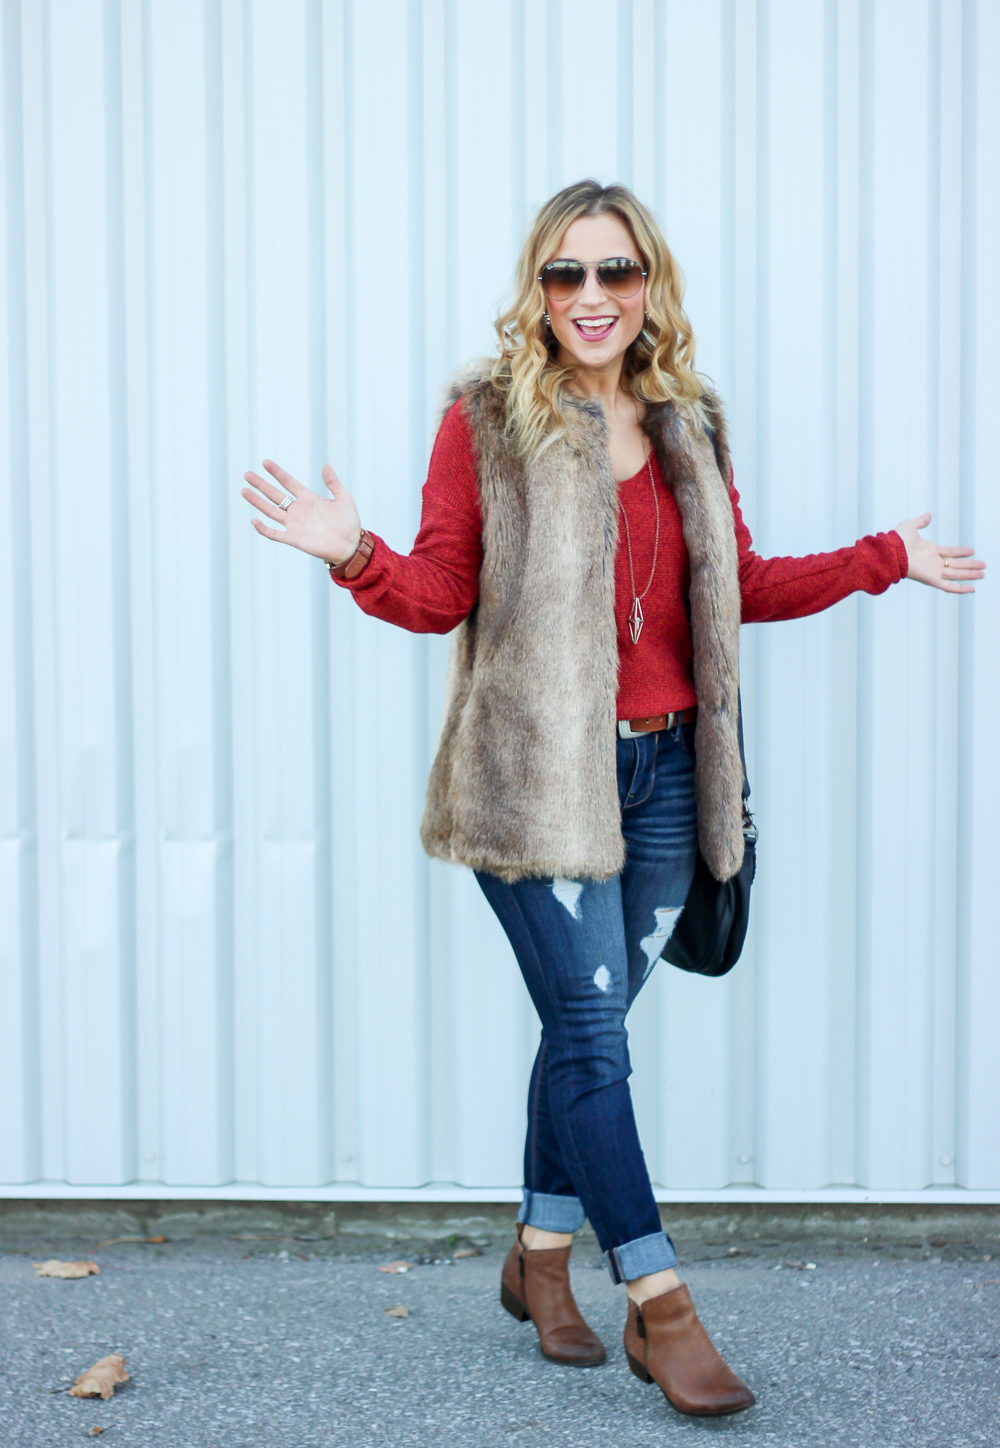 Canadian fashion blogger shows off a fun, casual outfit for the fall or winter, wearing an Old Navy sweater and a faux fur vest with jeans